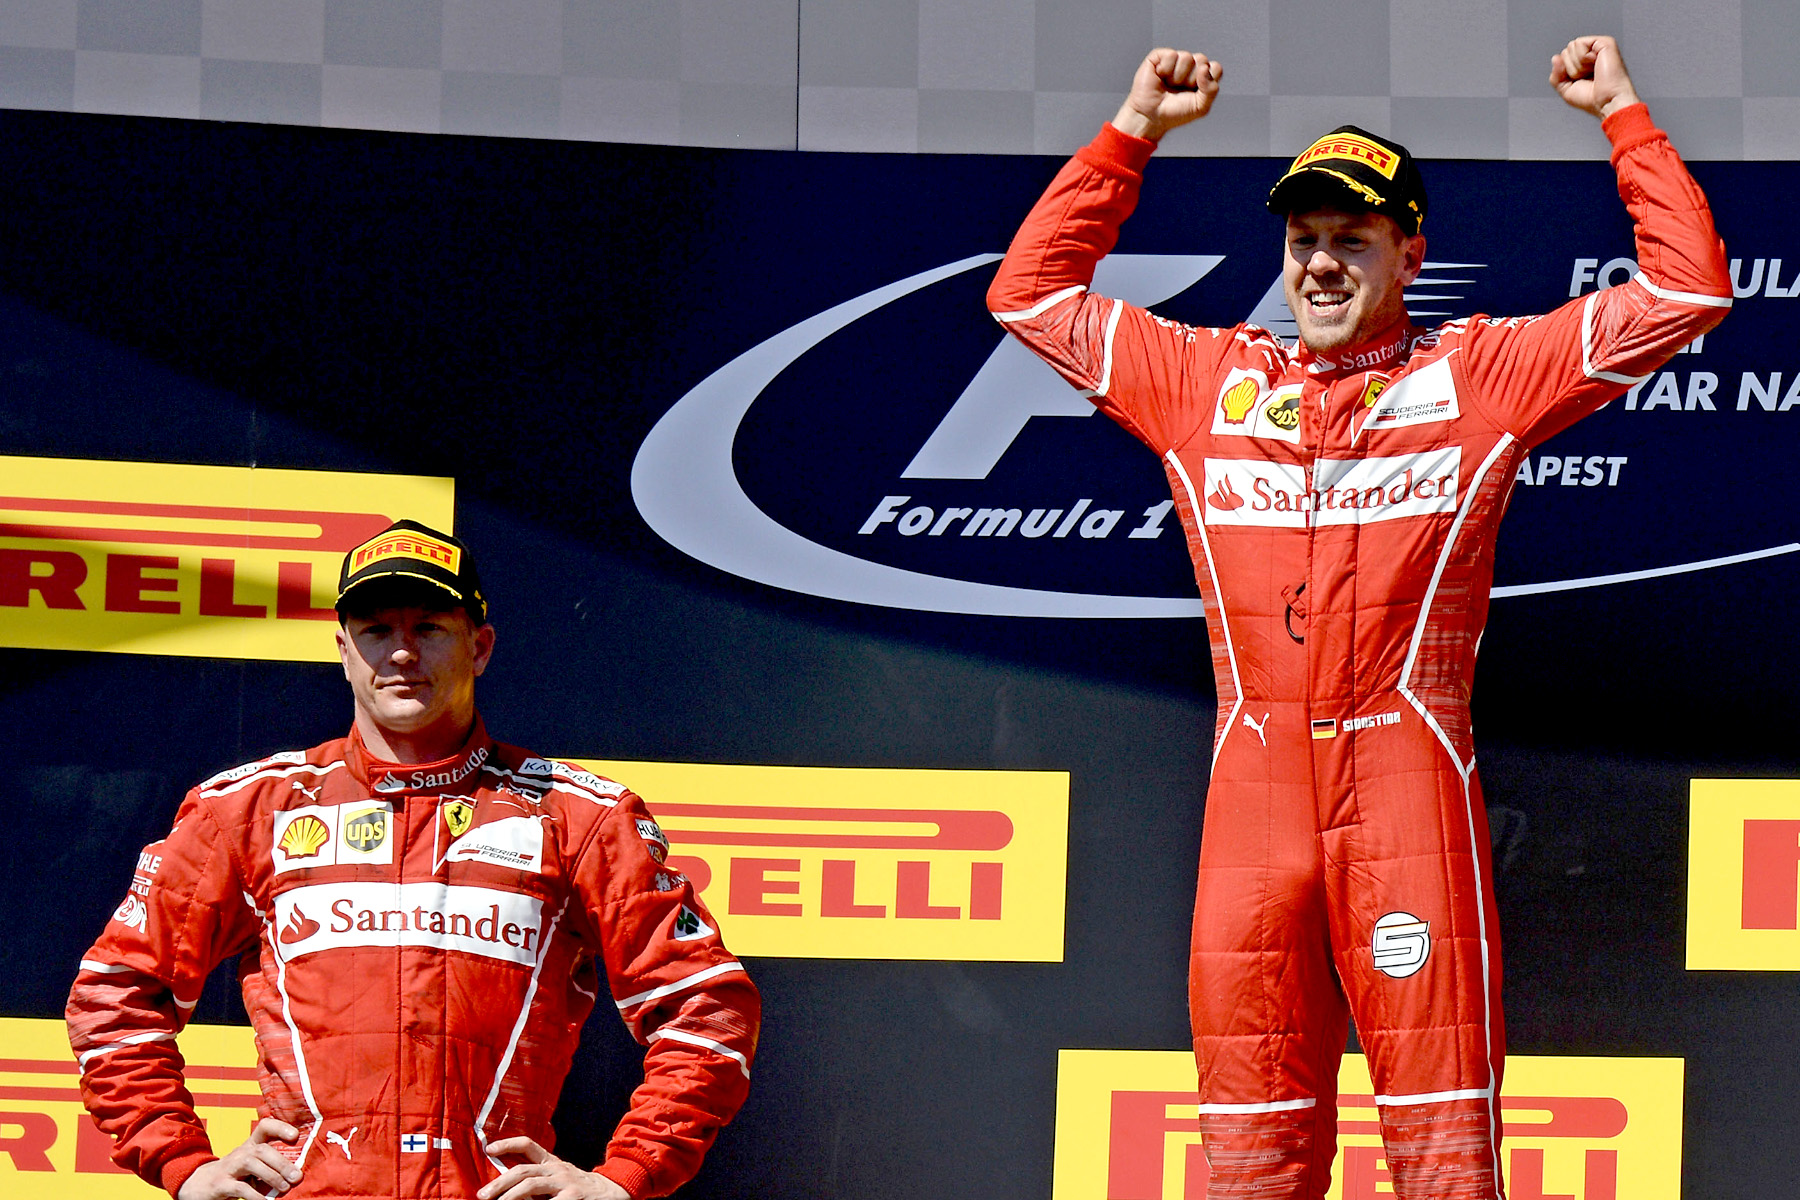 Sebastian Vettel and Kimi Raikkonen celebrate on the 2017 Hungarian Grand Prix podium.